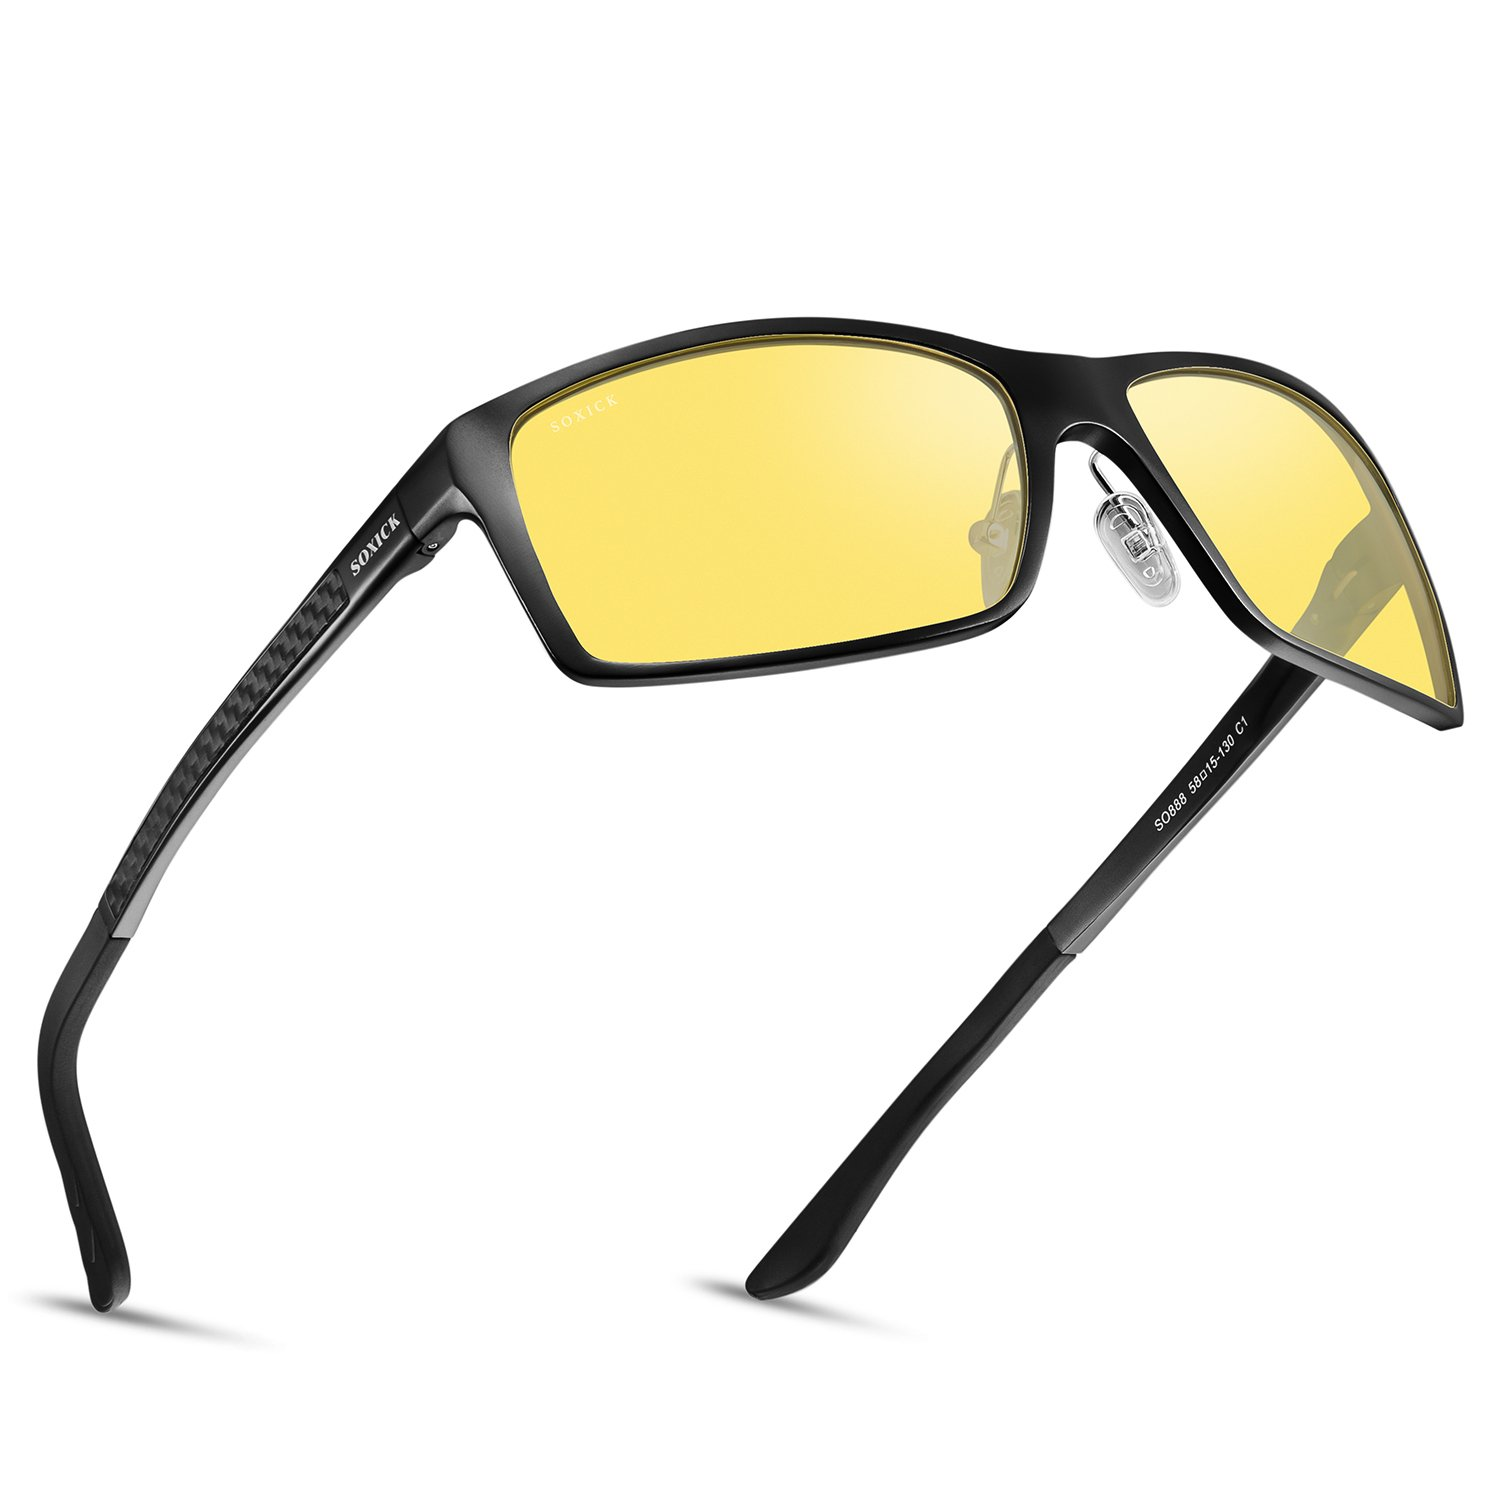 SOXICK Night Driving Glasses, Anti Glare Polarized Night Vision Glasses Fashion Sunglasses